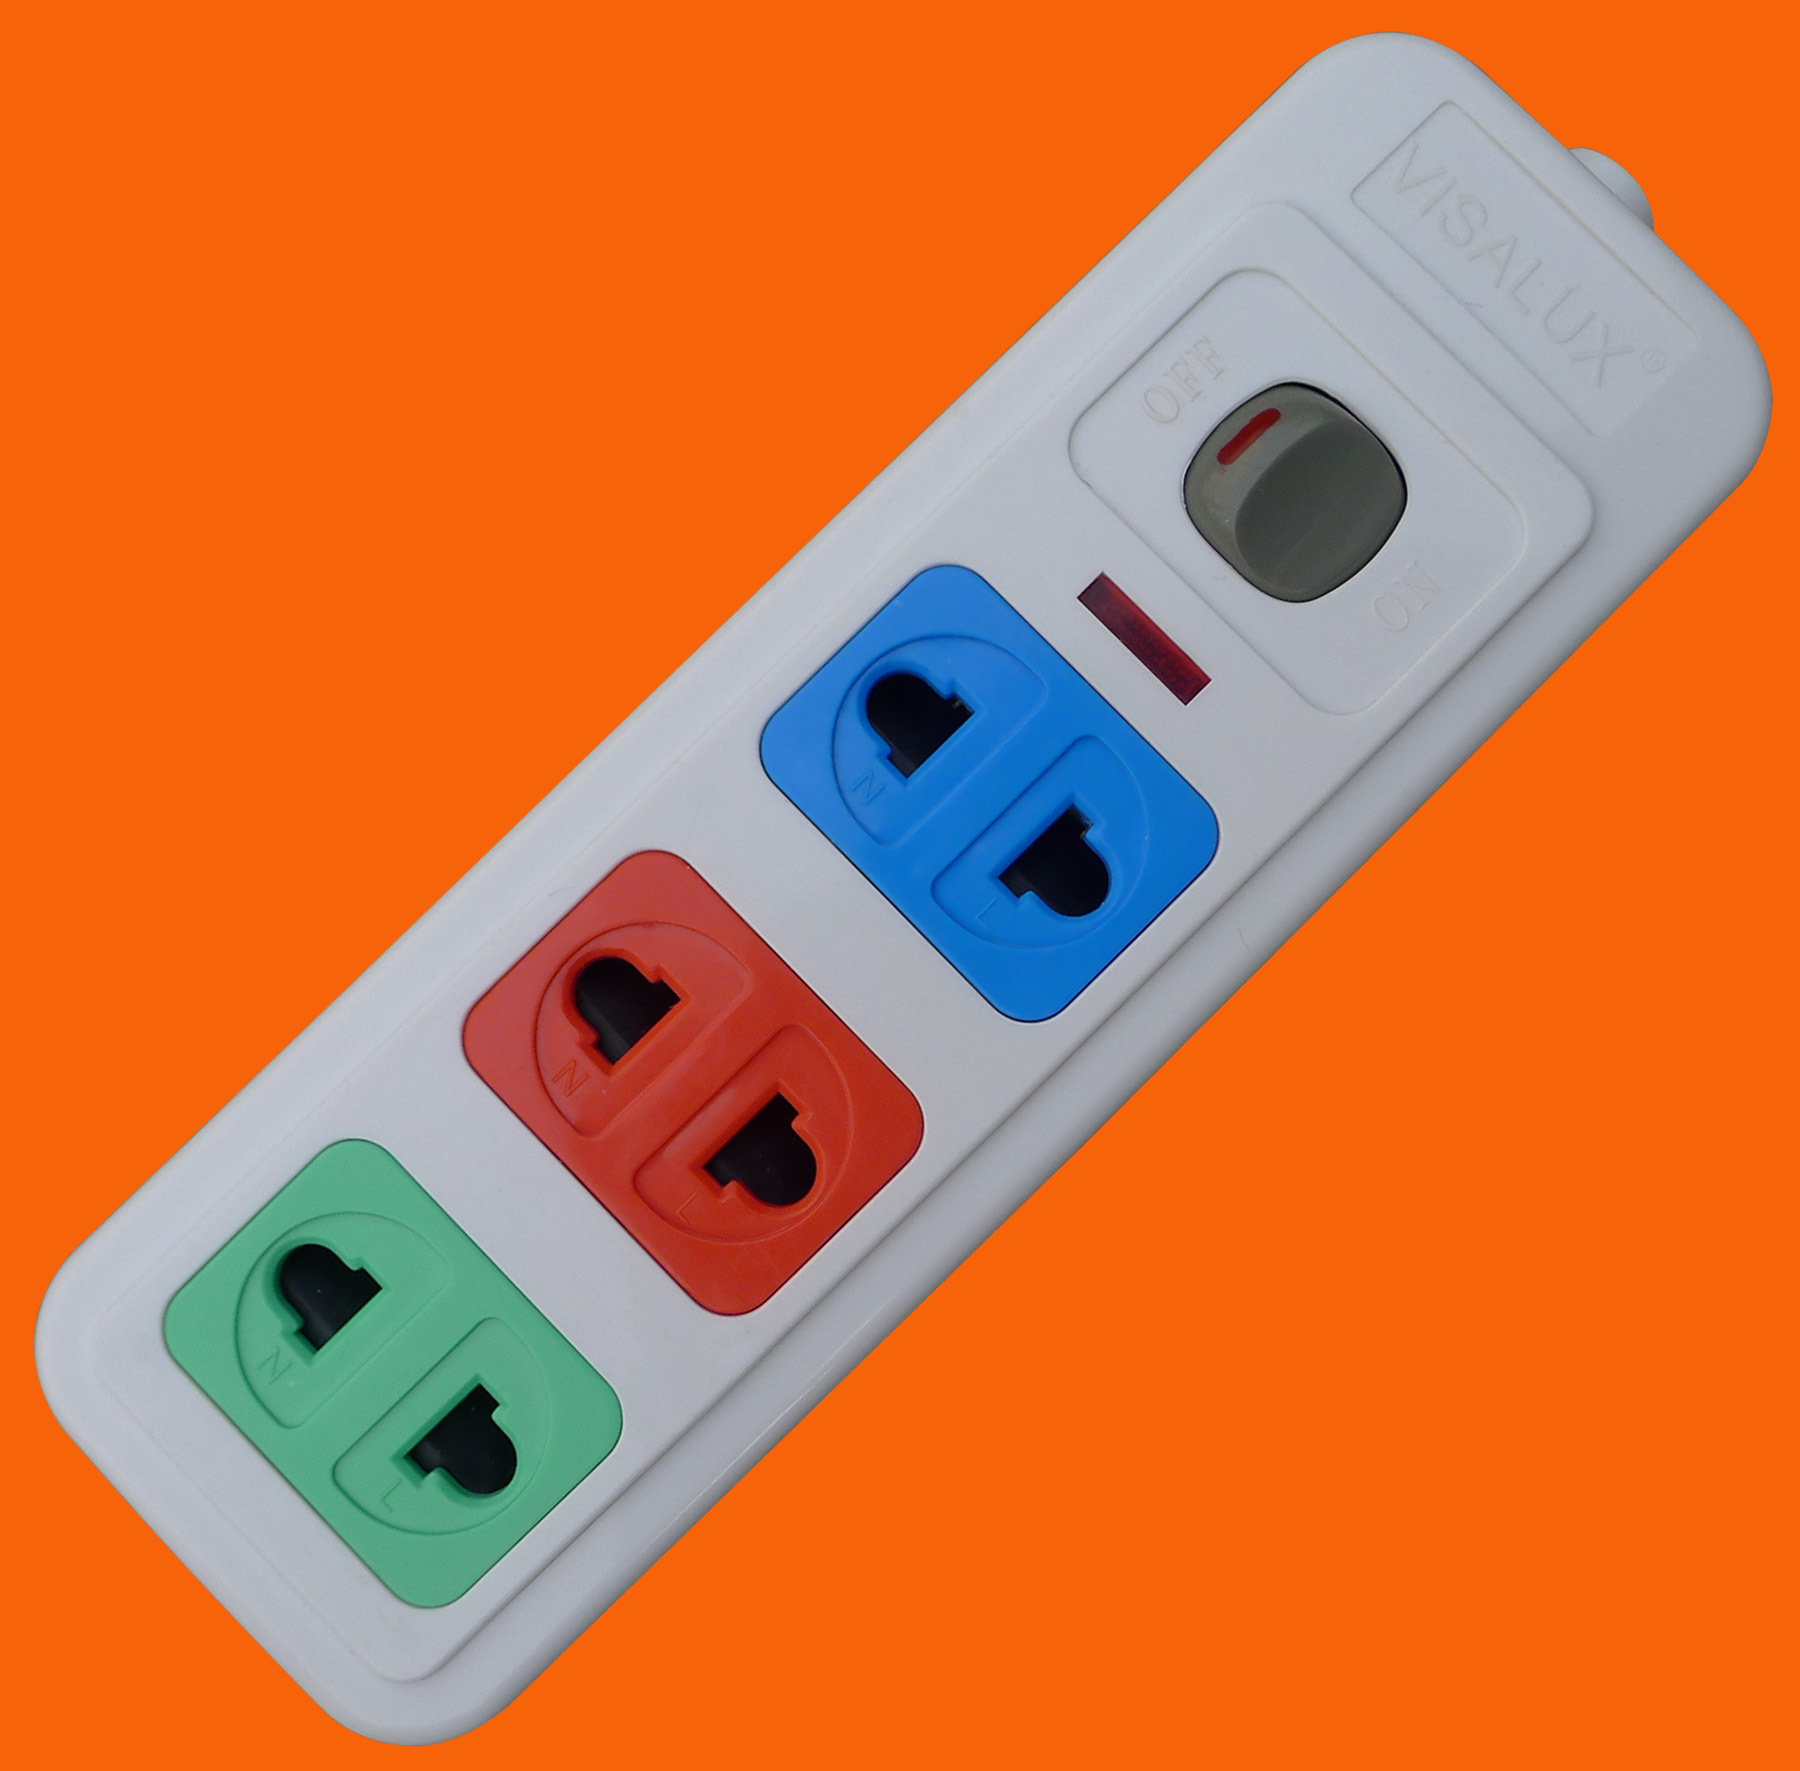 Power Strip Universal 2 Pin 3 Way Outlet Extension Socket (E1003)